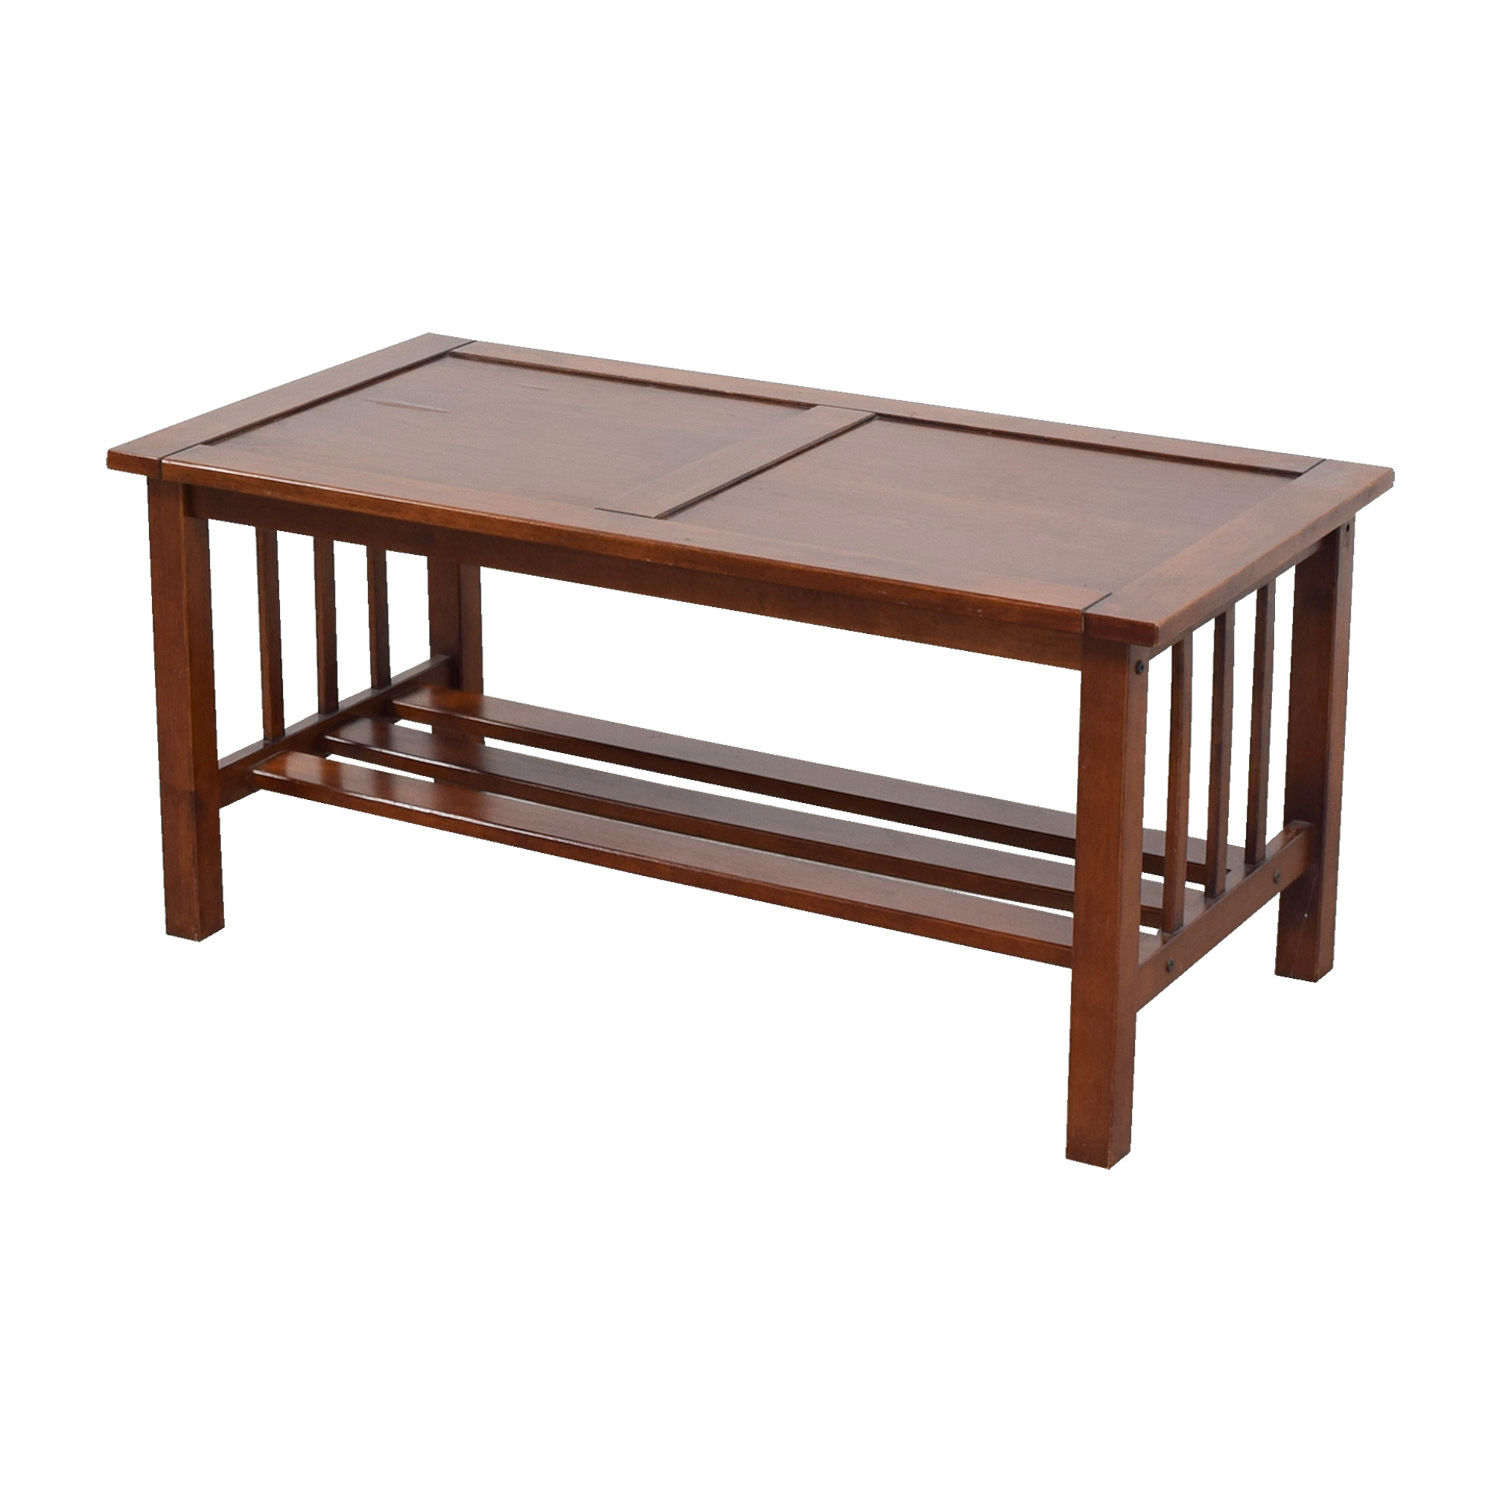 OFF Caged Wood Coffee Table Tables